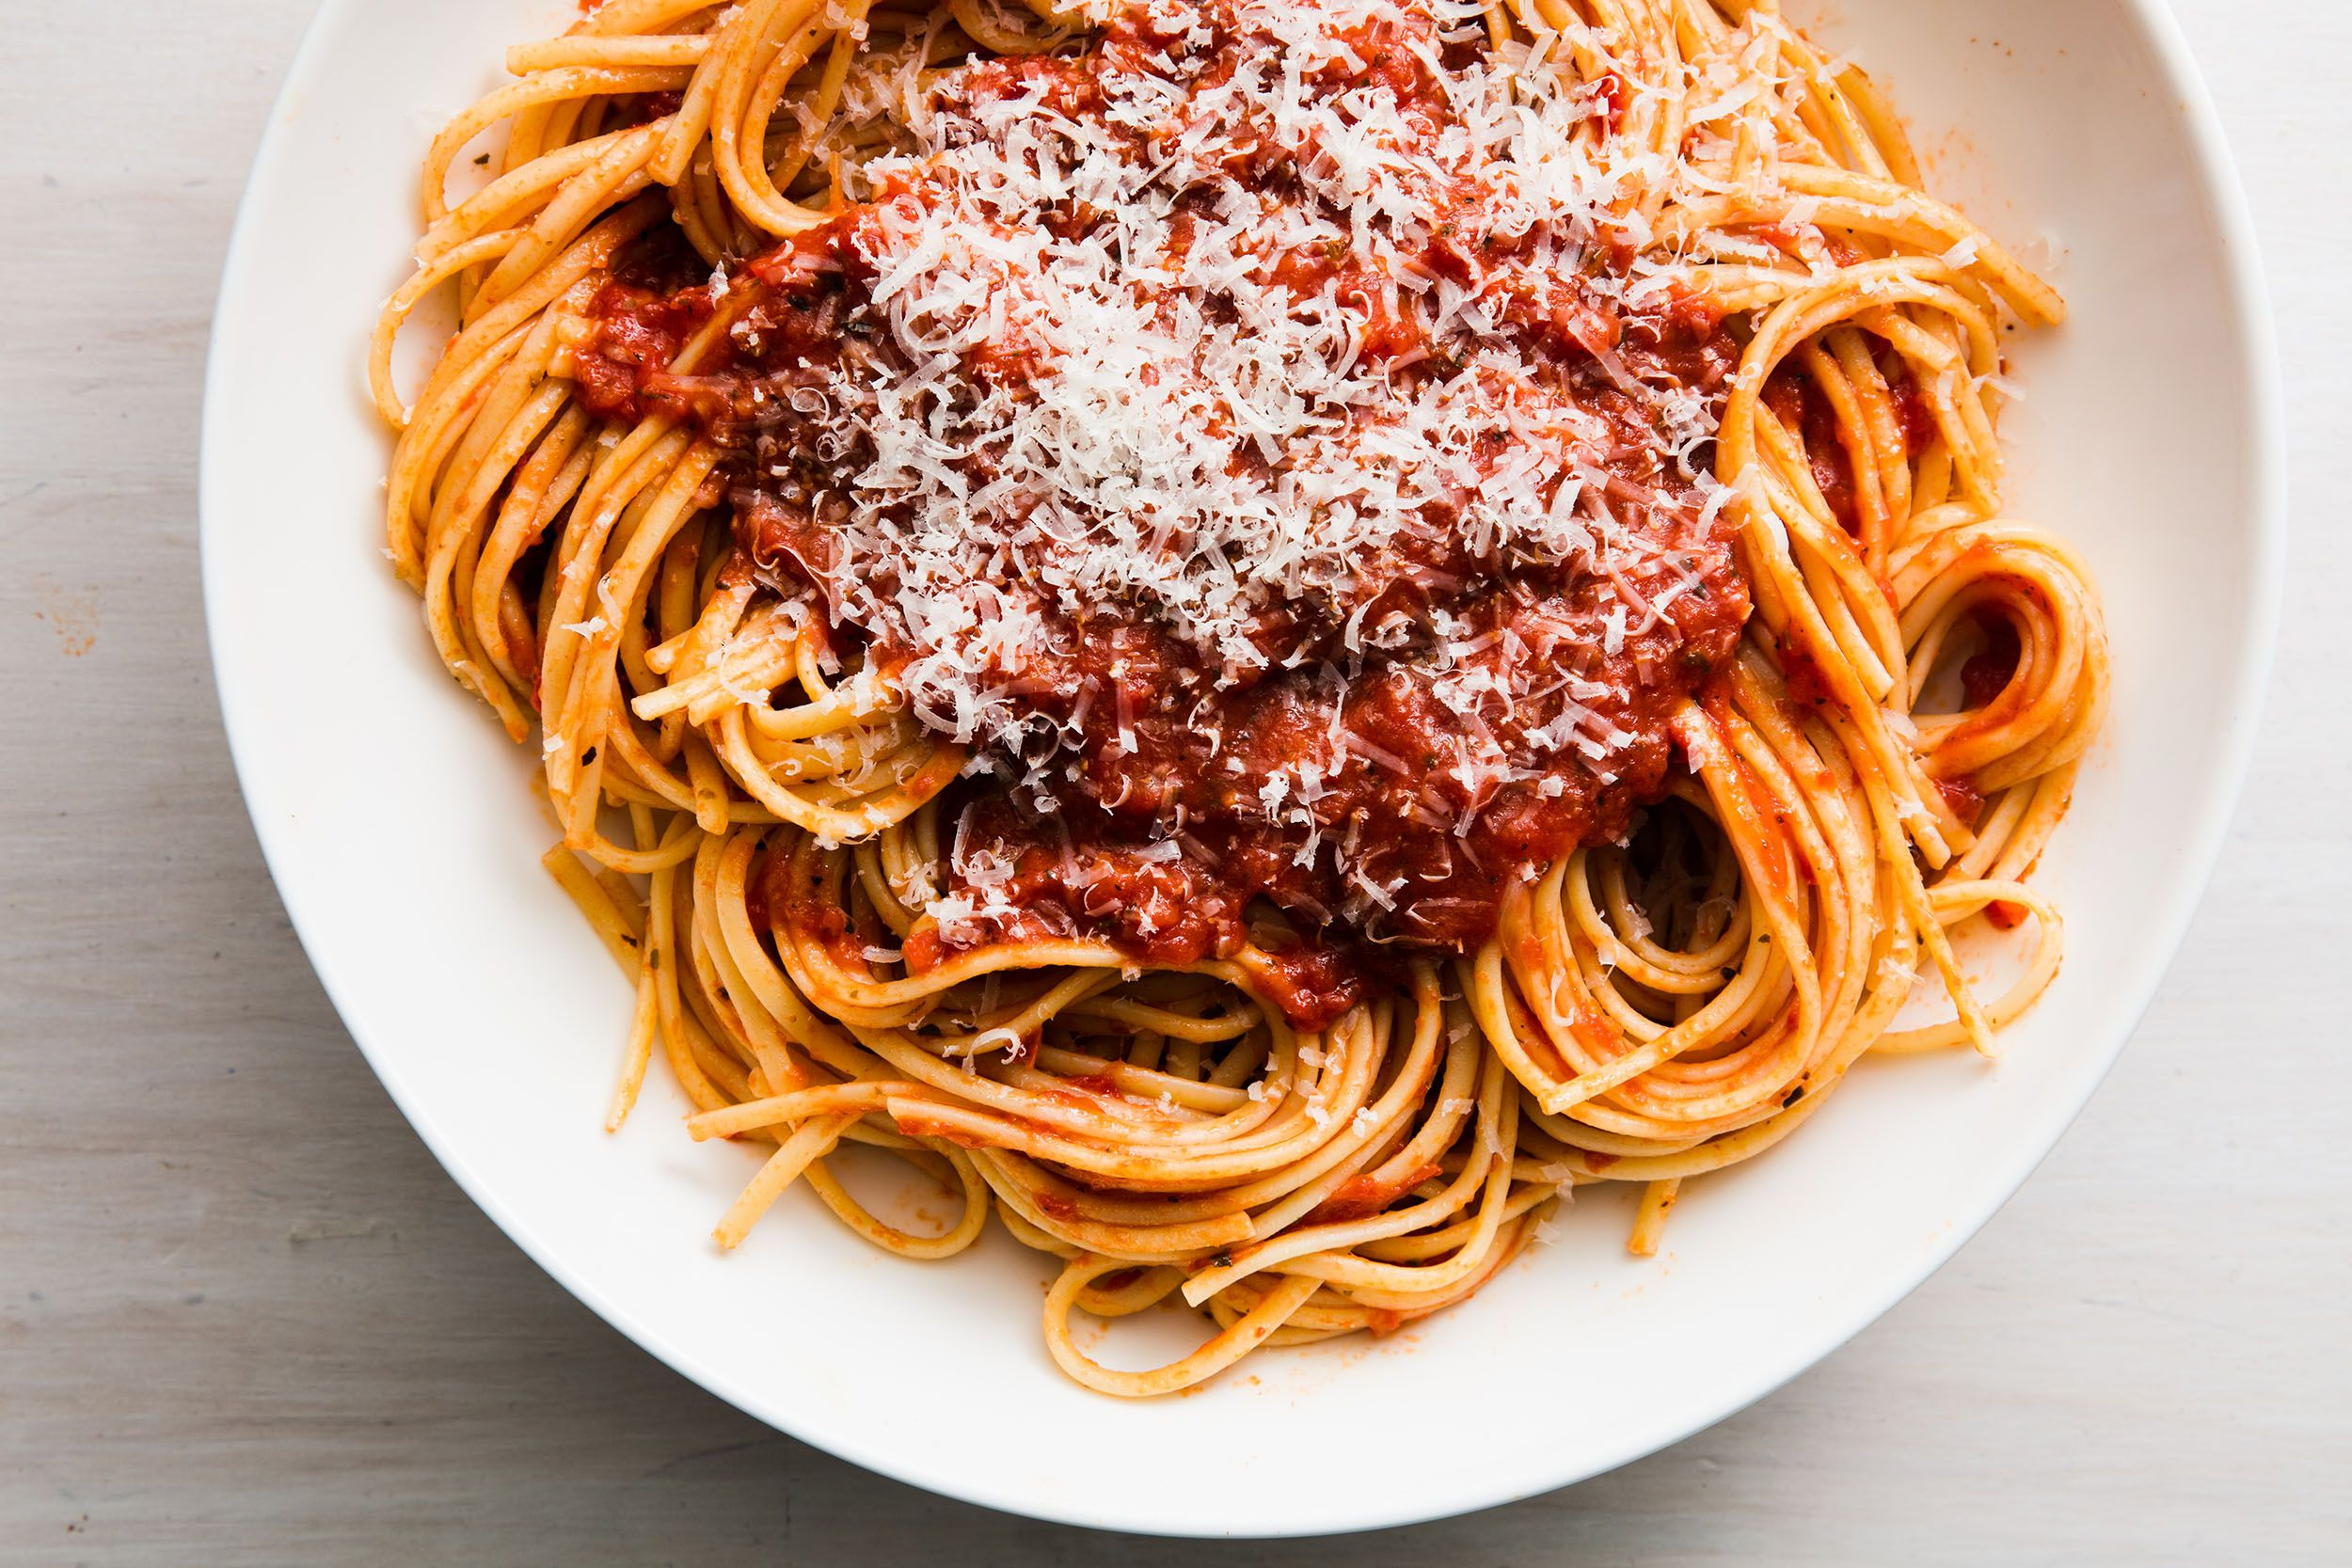 Best Low Carb Spaghetti Sauce Recipe How To Make Low Carb Marinara